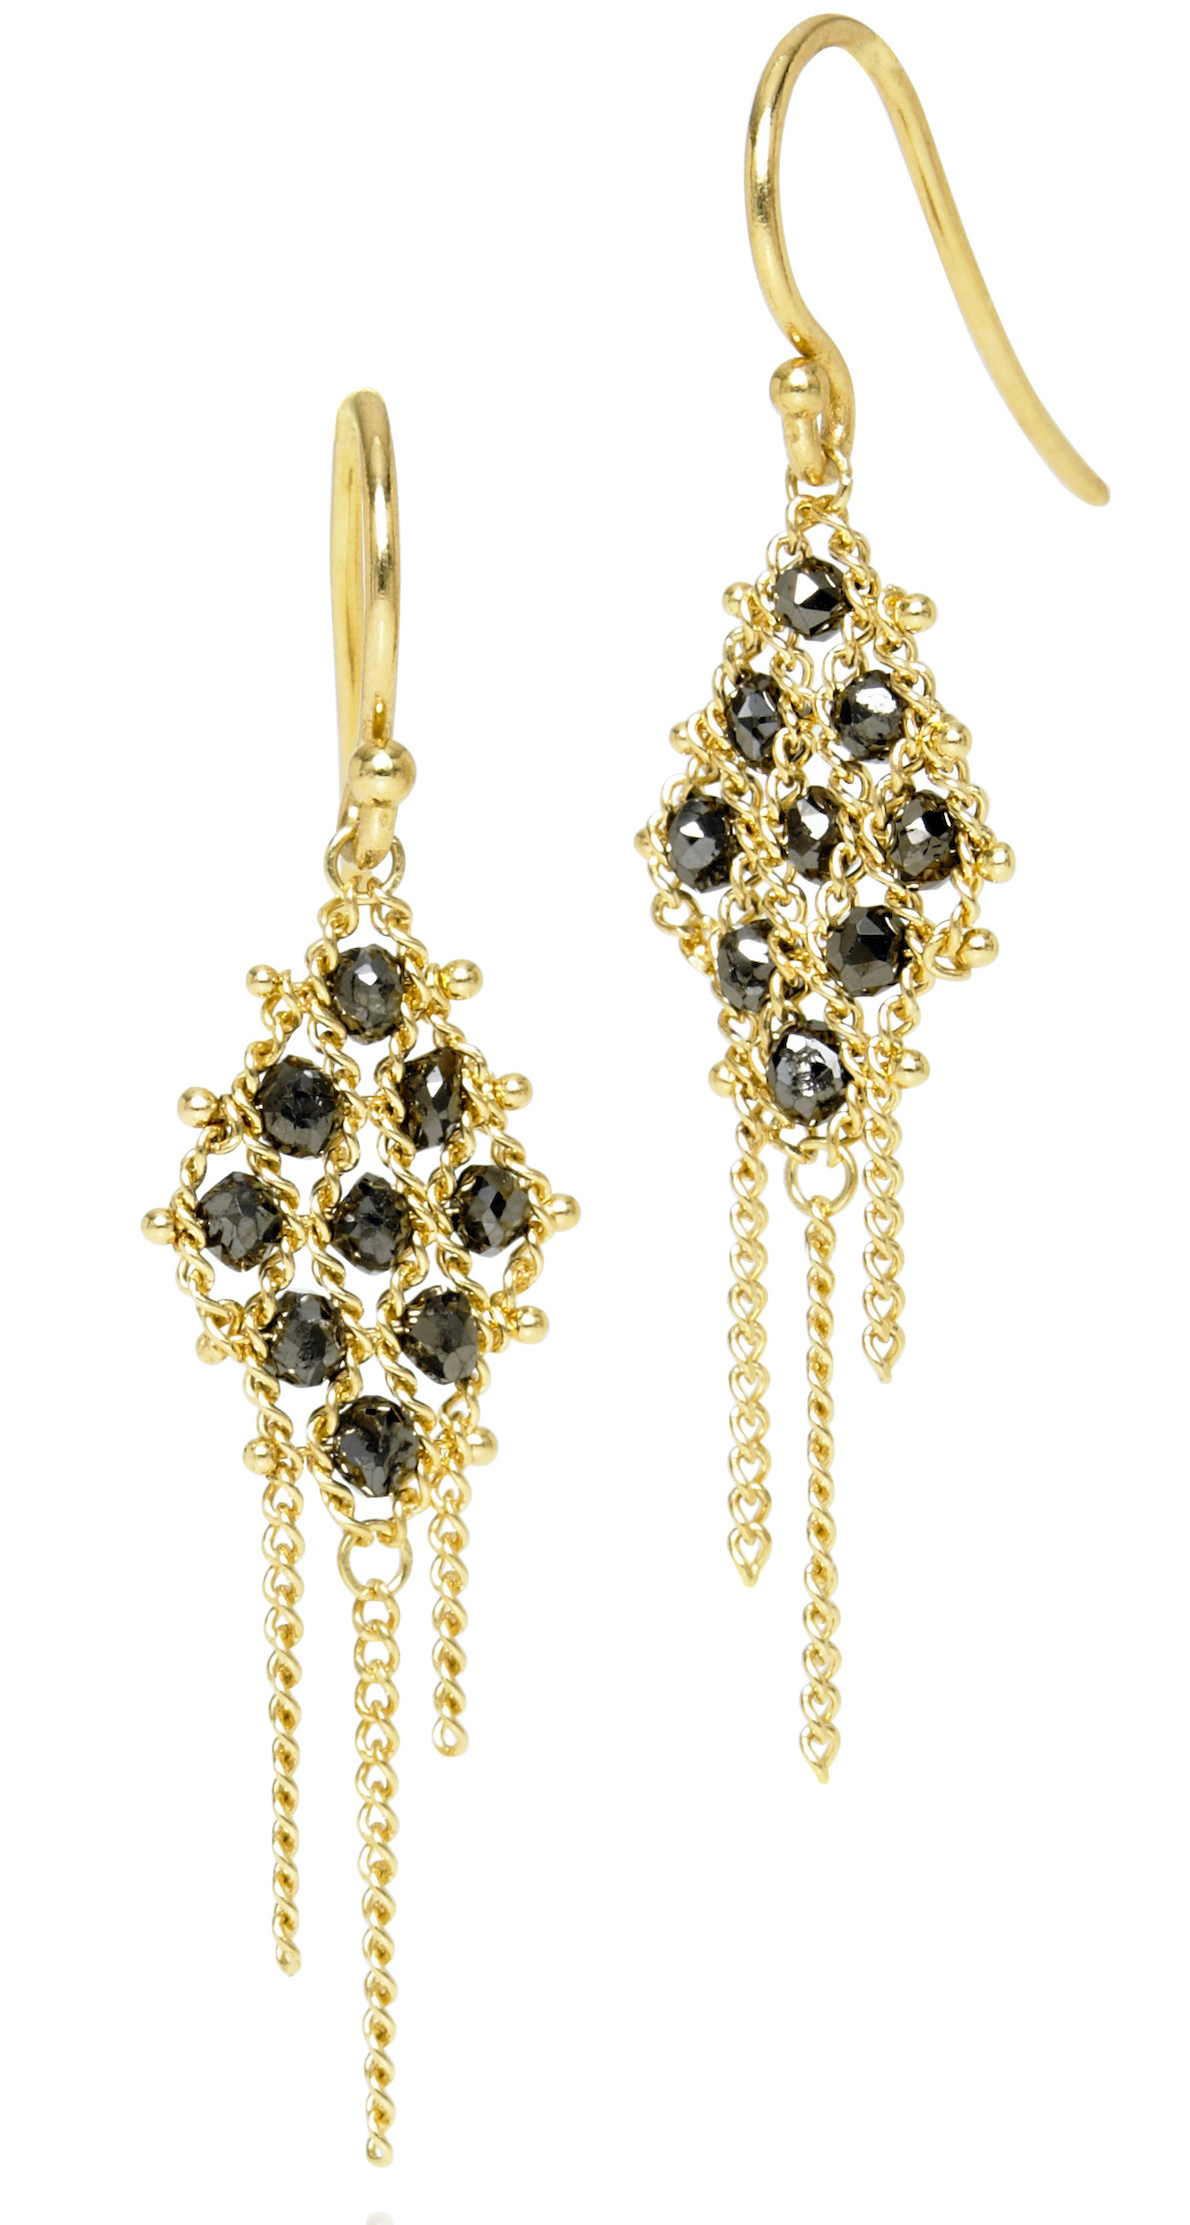 Amali Jewelry black diamond woven earrings | JCK On Your Market